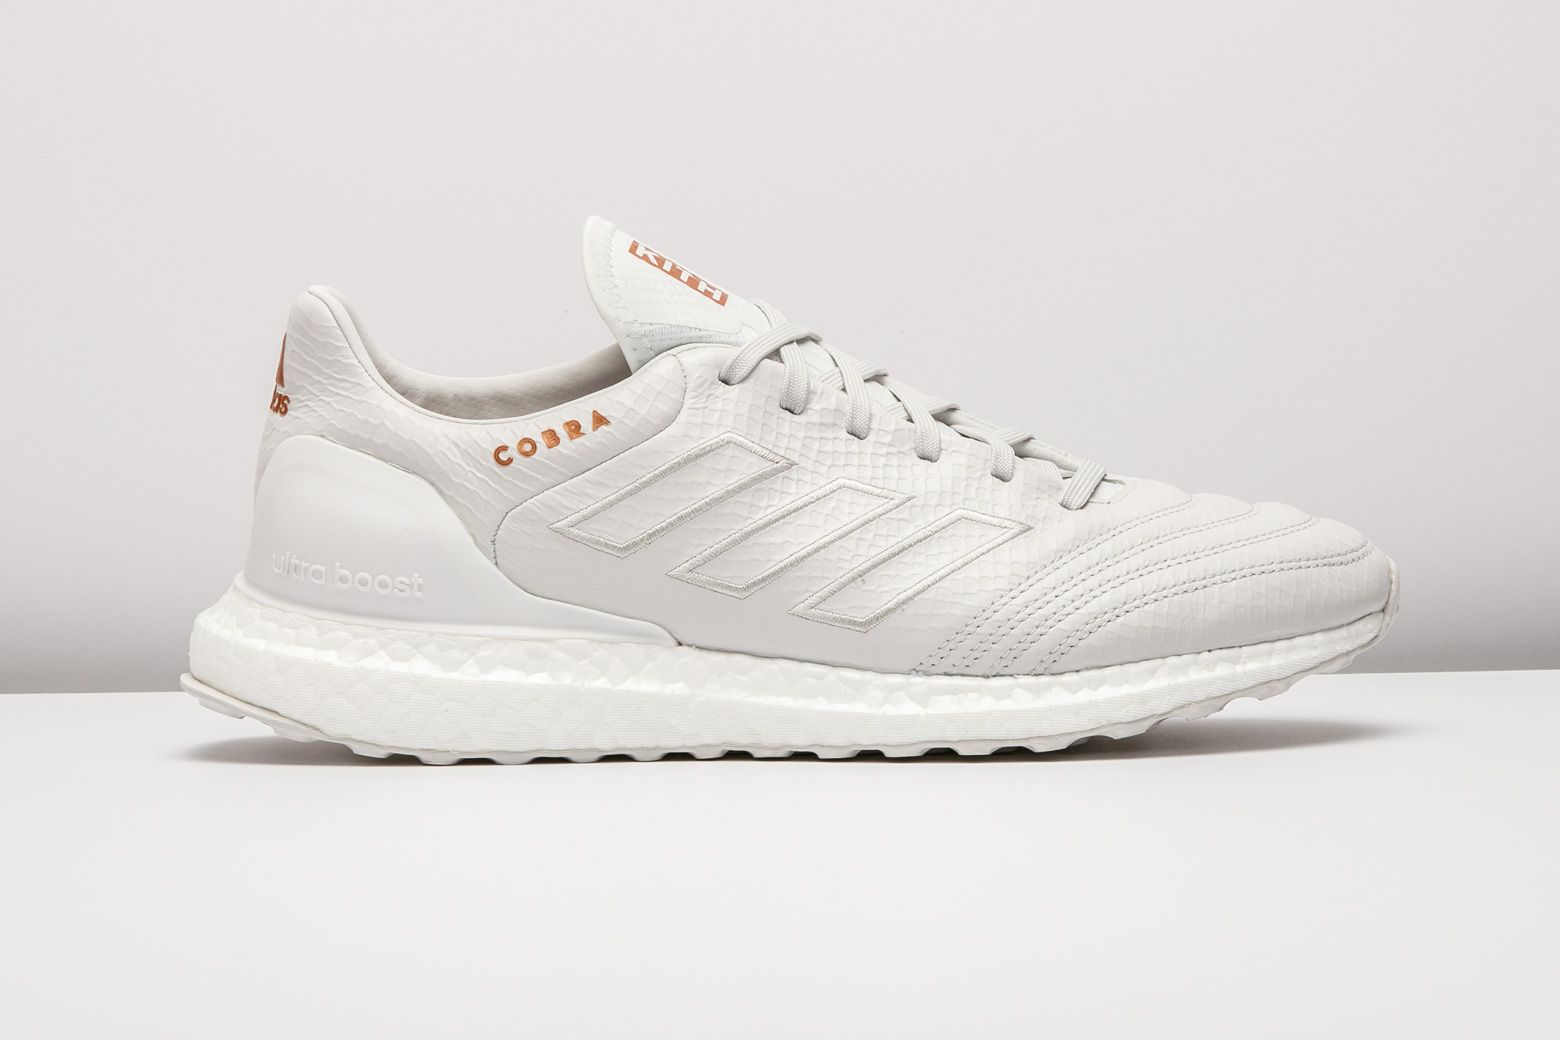 dd528e59167 The KITH x adidas Soccer Collection brought us this pristine white Copa  17.1 Ultra Boost.